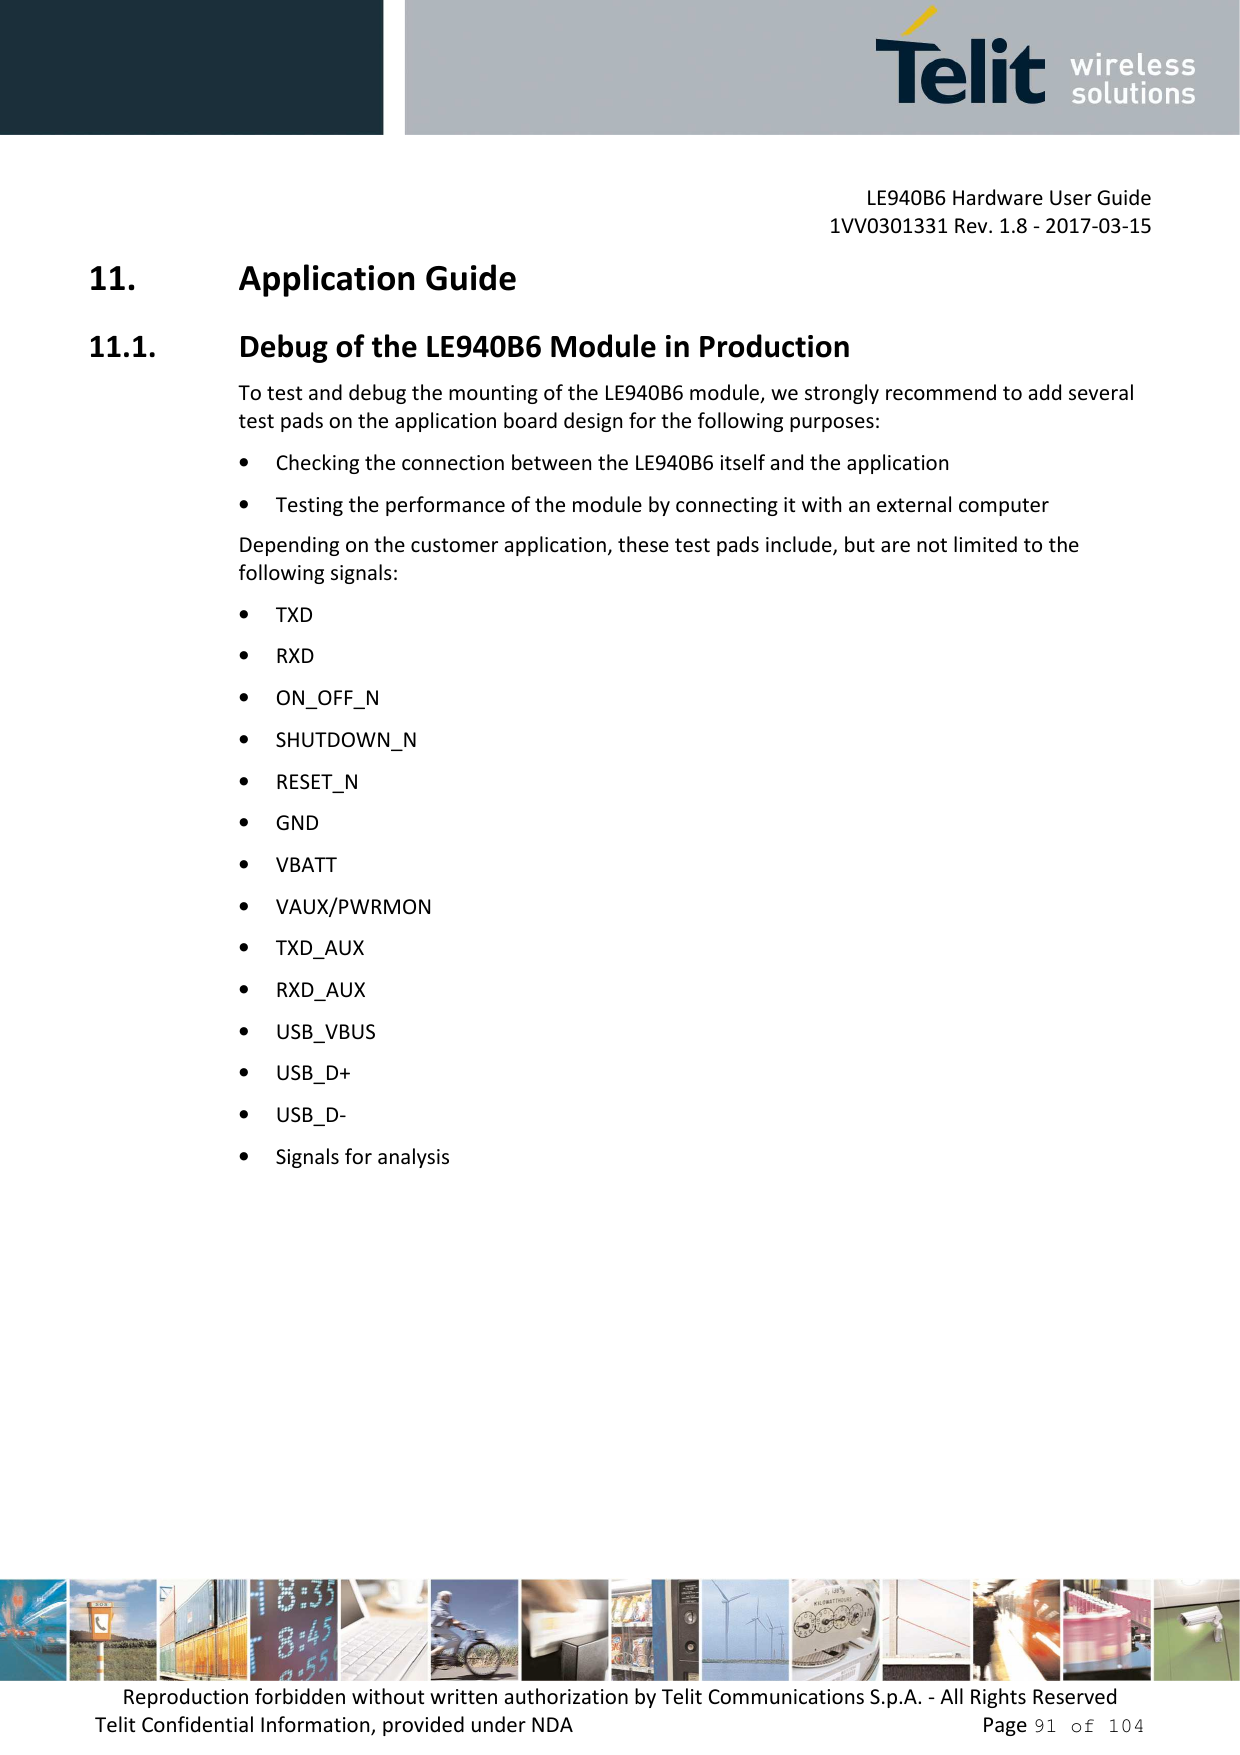 LE940B6 Hardware User Guide     1VV0301331 Rev. 1.8 - 2017-03-15 Reproduction forbidden without written authorization by Telit Communications S.p.A. - All Rights Reserved Telit Confidential Information, provided under NDA                 Page 91 of 104 11. Application Guide 11.1. Debug of the LE940B6 Module in Production To test and debug the mounting of the LE940B6 module, we strongly recommend to add several test pads on the application board design for the following purposes: • Checking the connection between the LE940B6 itself and the application • Testing the performance of the module by connecting it with an external computer Depending on the customer application, these test pads include, but are not limited to the following signals: • TXD • RXD • ON_OFF_N • SHUTDOWN_N • RESET_N • GND • VBATT • VAUX/PWRMON • TXD_AUX  • RXD_AUX  • USB_VBUS • USB_D+ • USB_D- • Signals for analysis